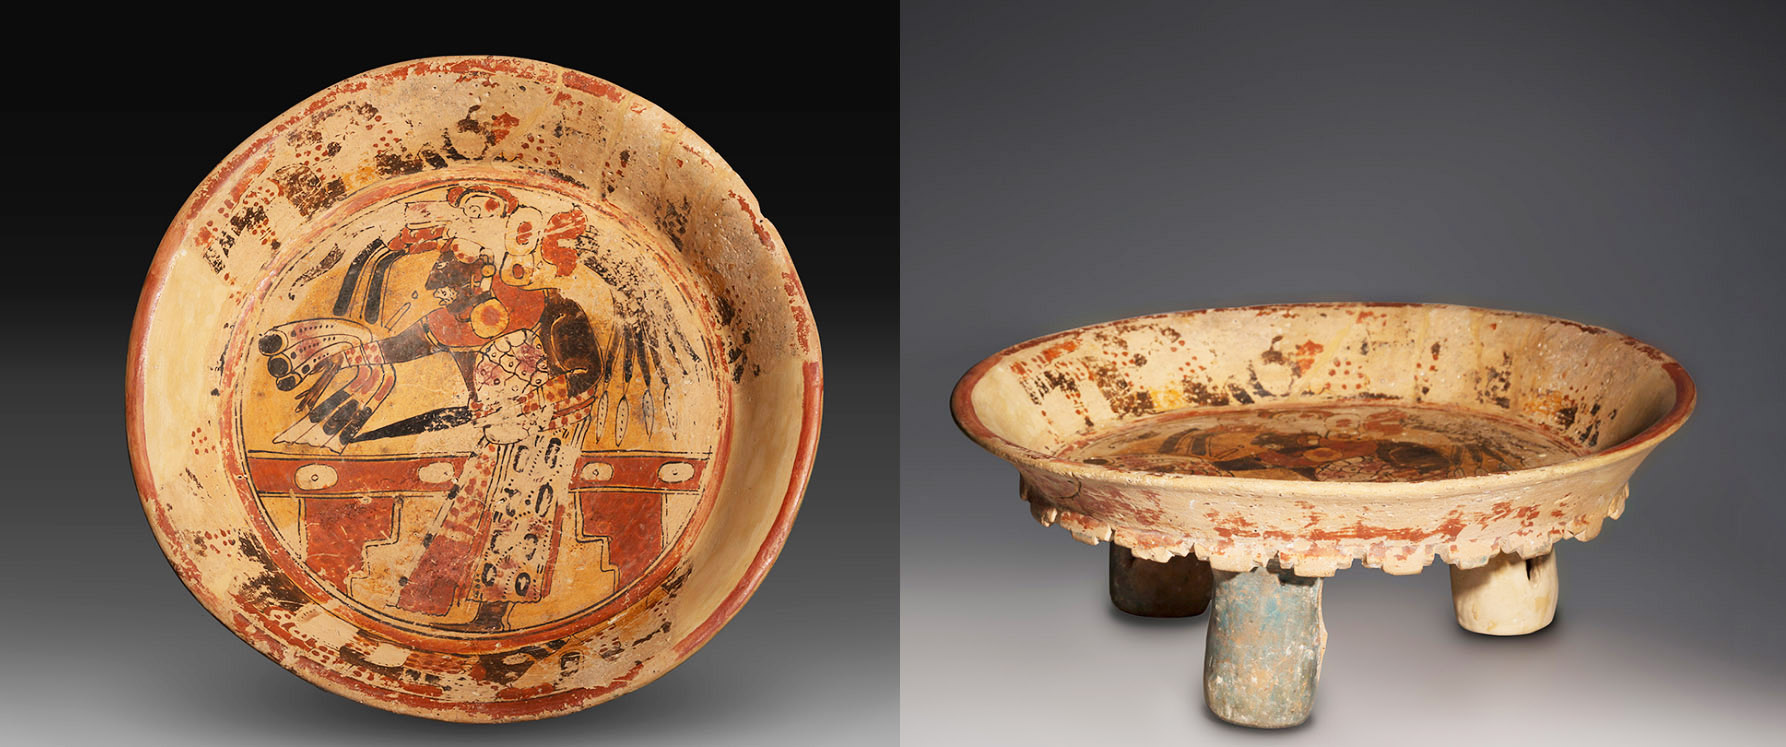 Three legged Mayan bowl 600 - 900 AD.